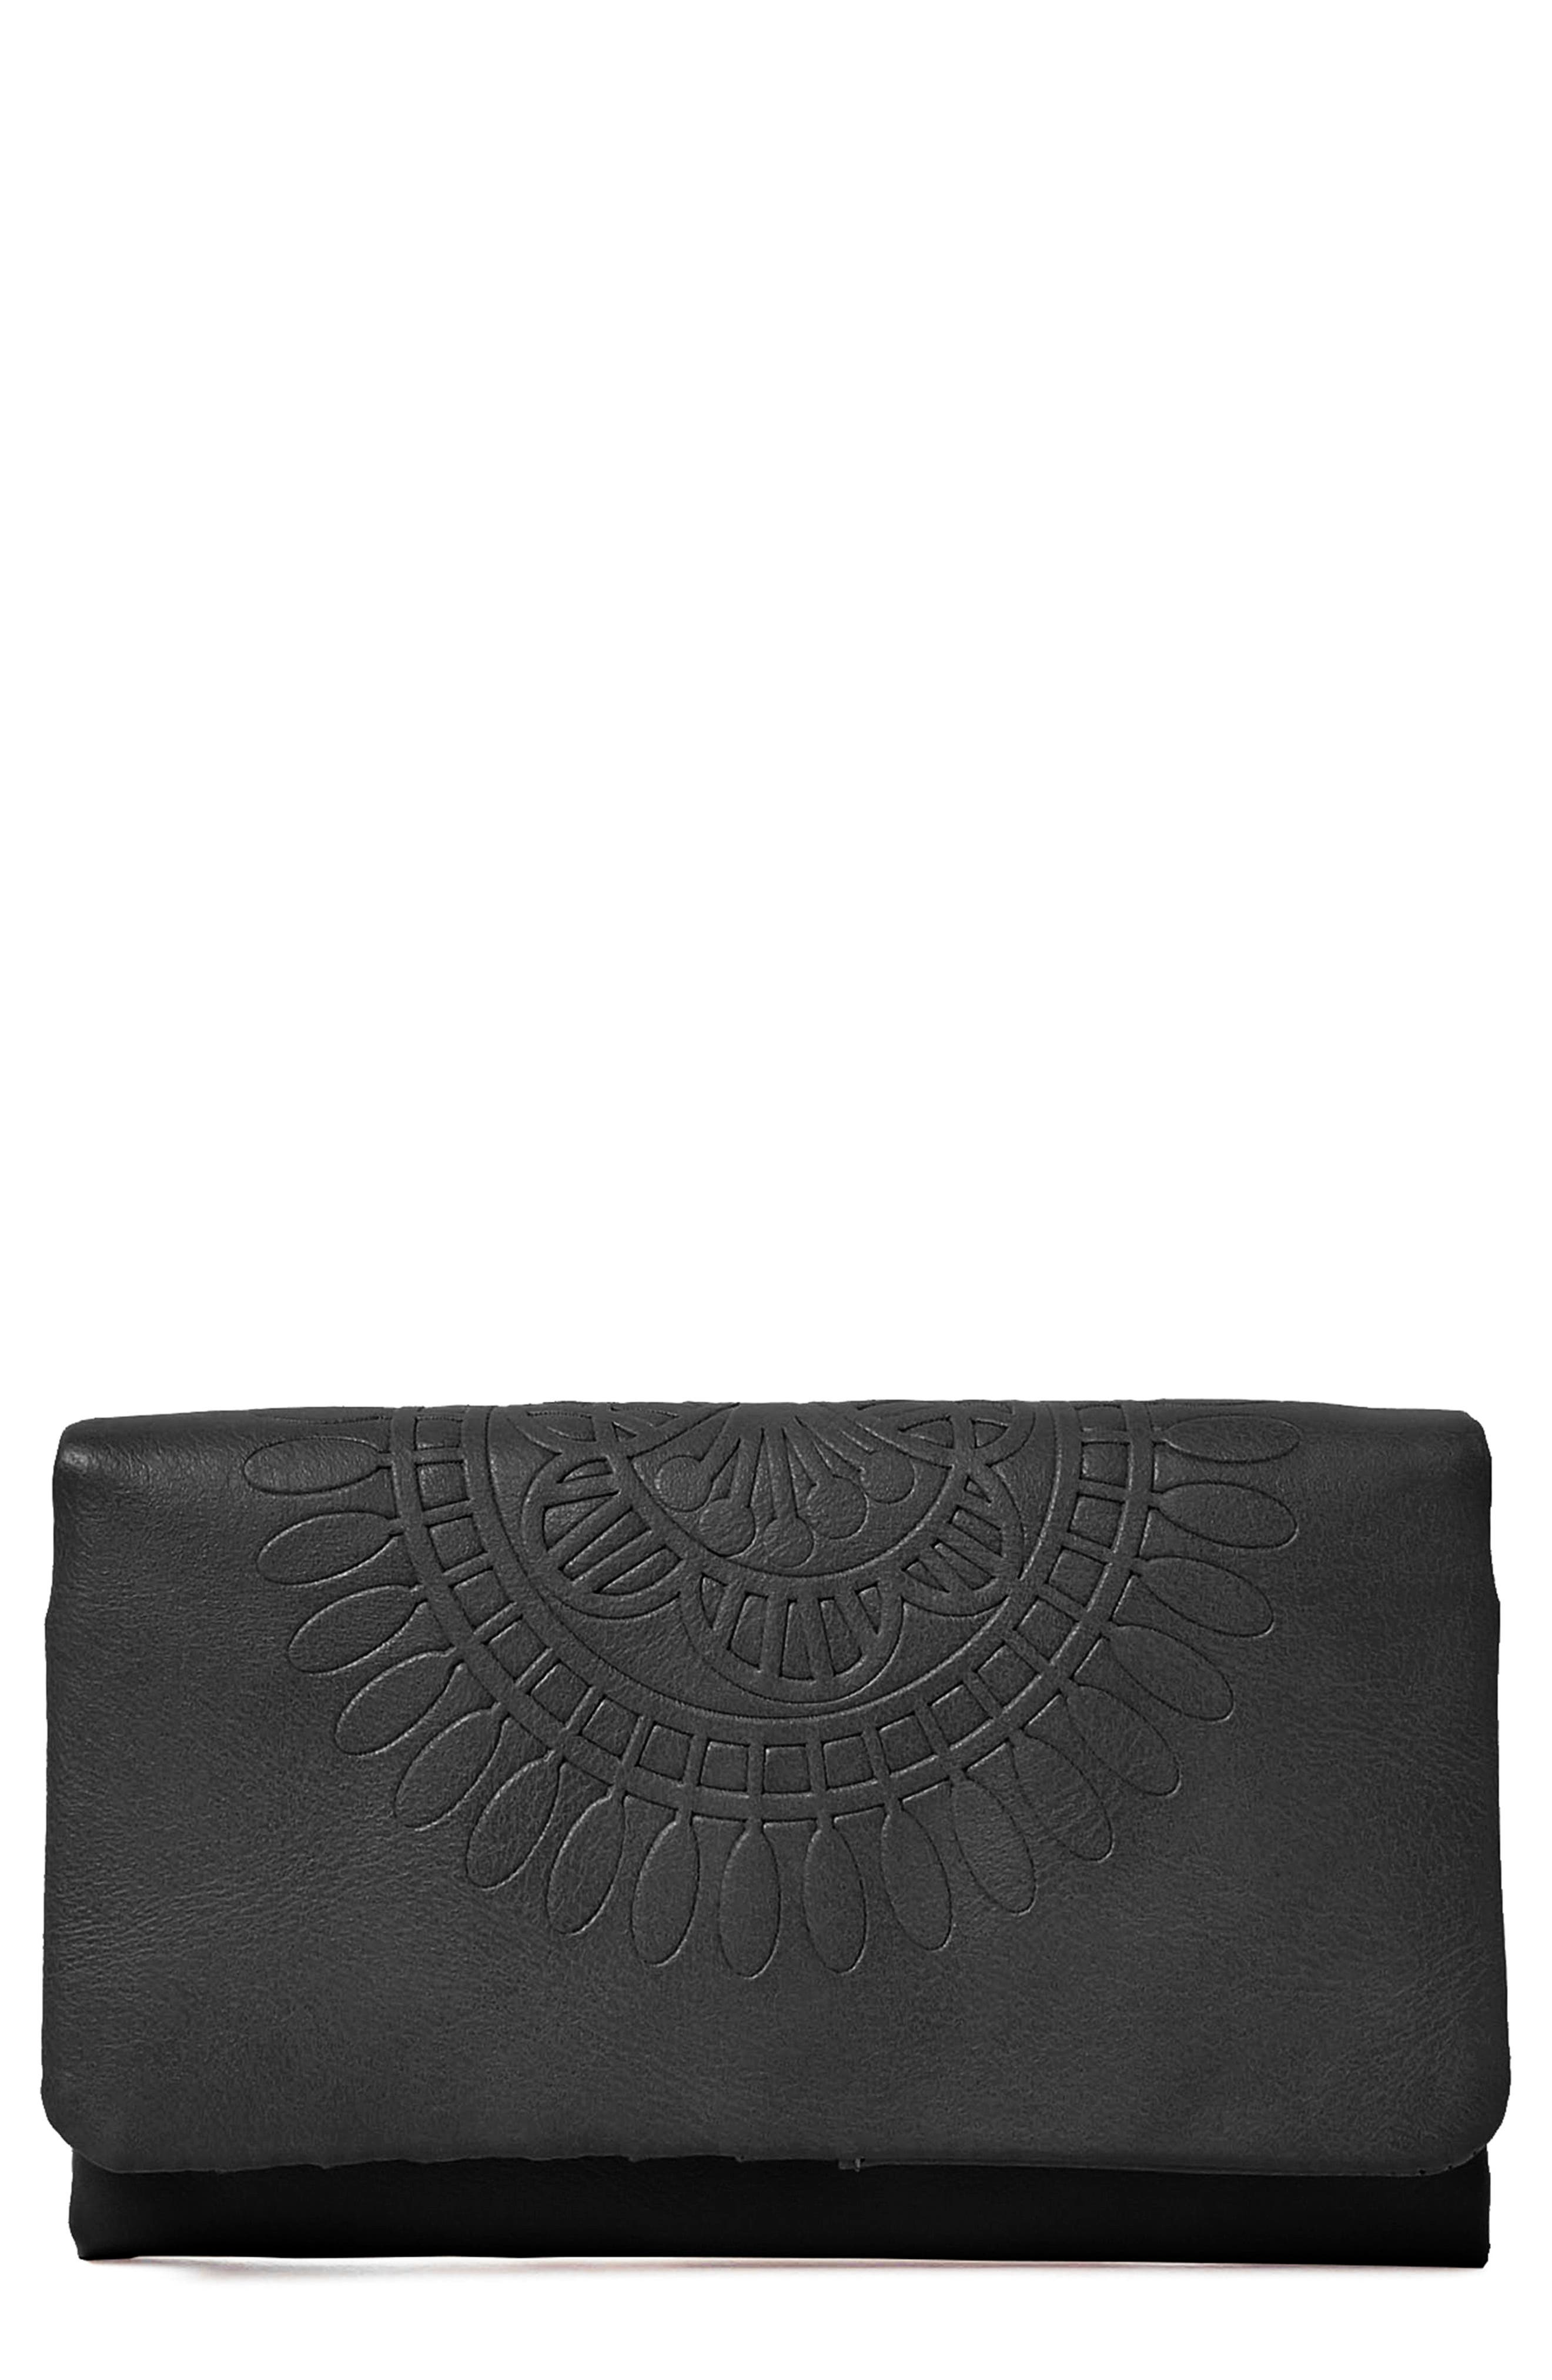 Flower Gypsy Vegan Leather Wallet,                             Main thumbnail 1, color,                             001